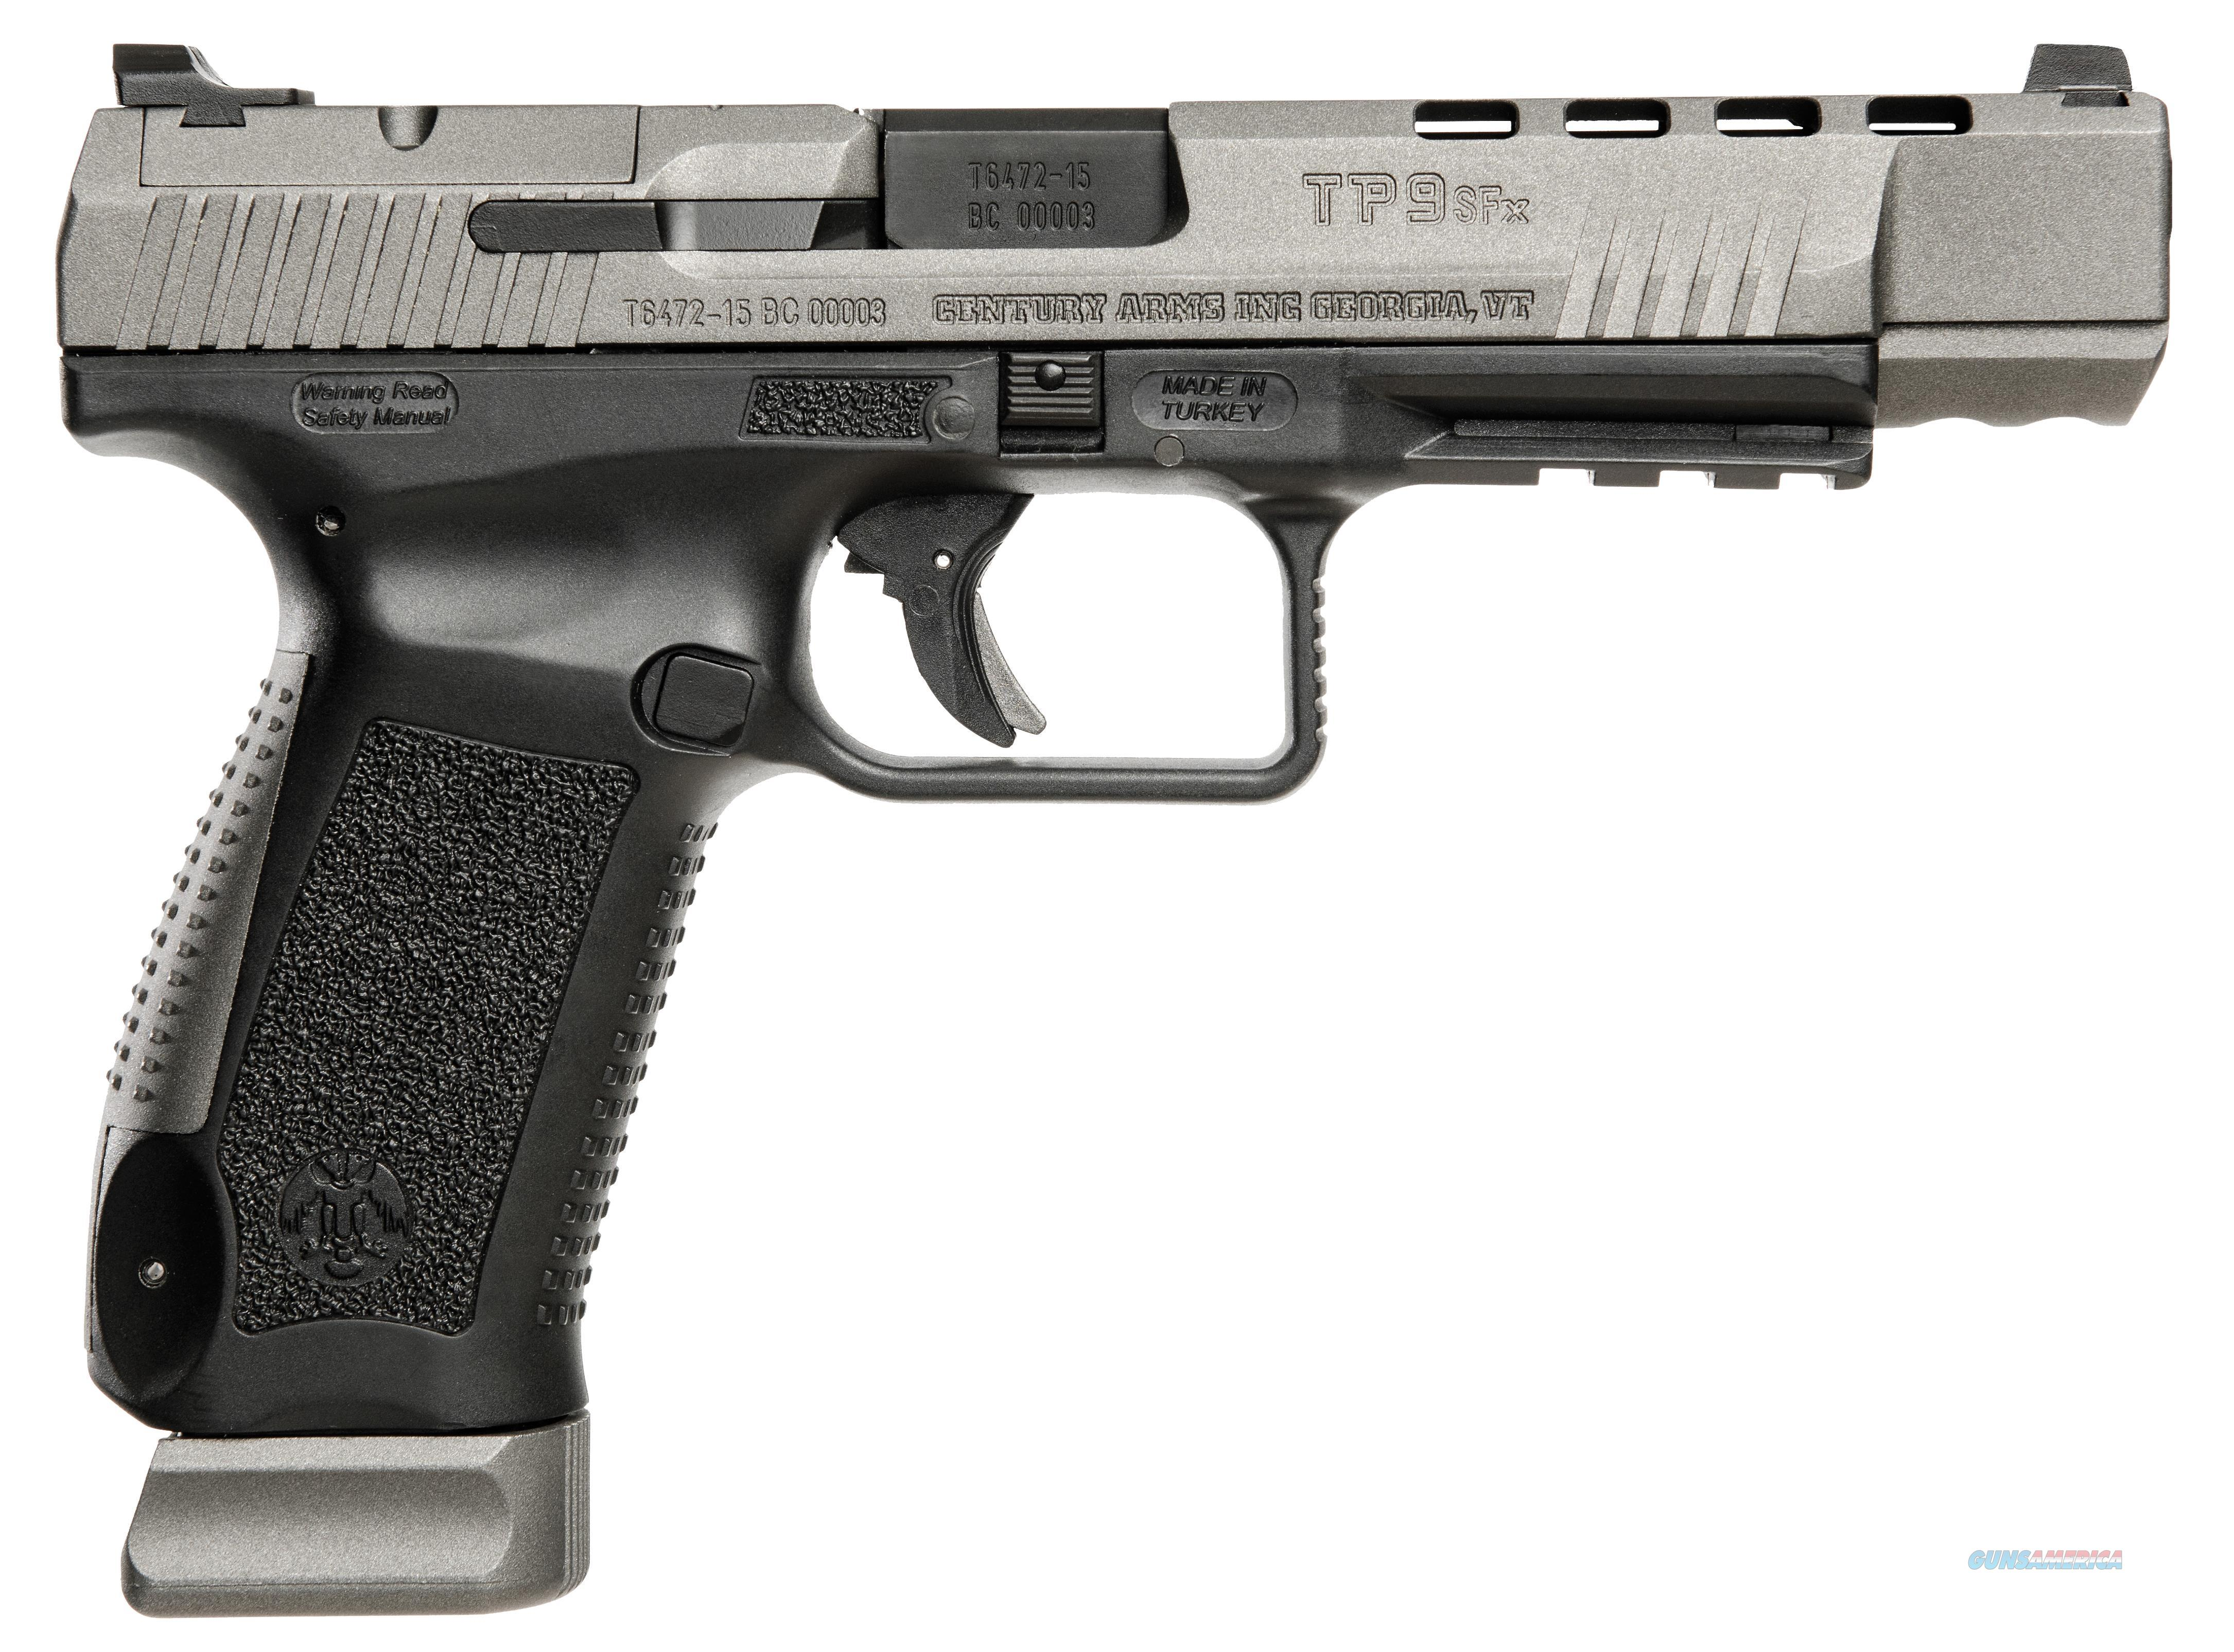 "CANIK USA TP9SFX 9MM 5.2"" 20RD HG3774G-N  Guns > Pistols > Century International Arms - Pistols > Pistols"